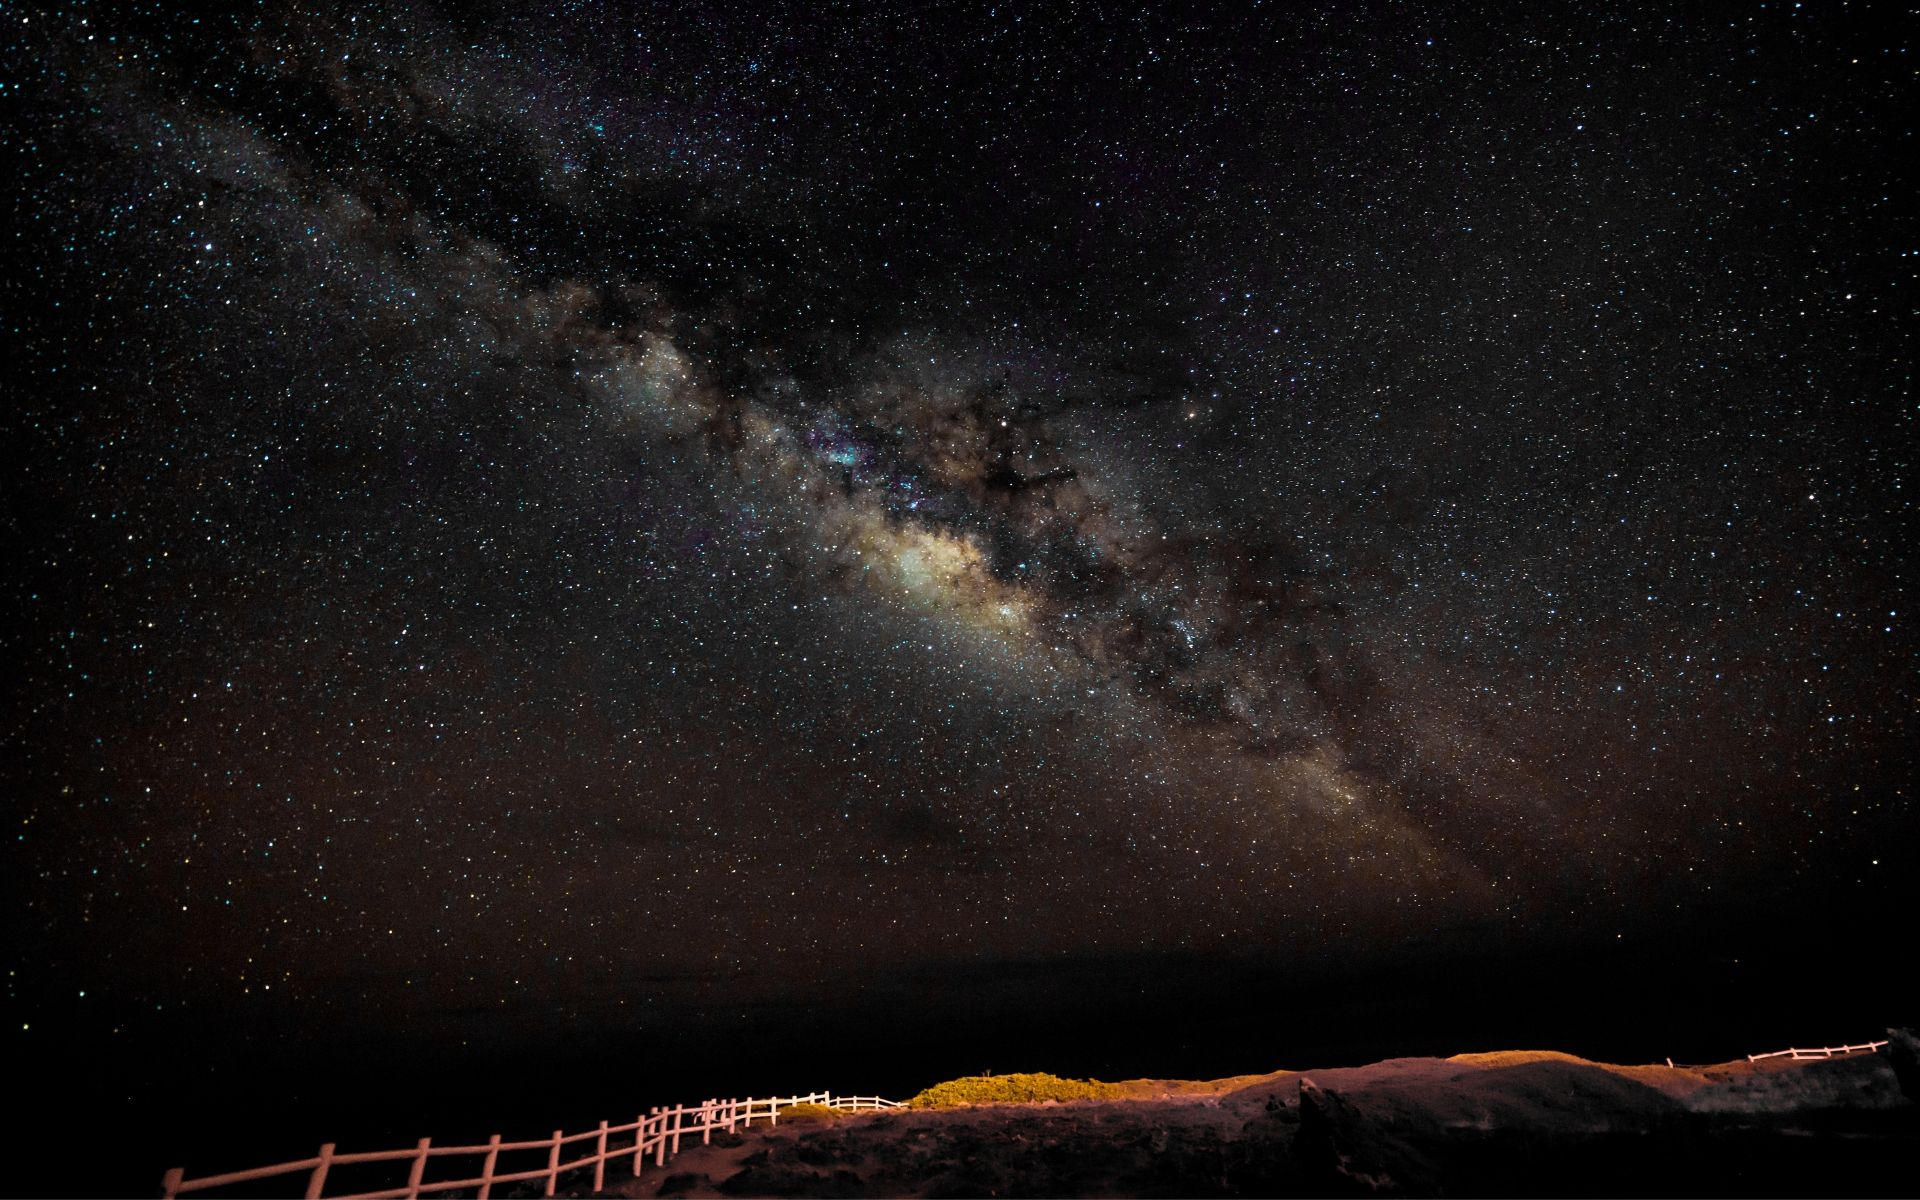 While still in Japan, take a detour to Okinawa to capture the sights of the Milky Way at its most brightest. Photo: Courtesy of Klook.